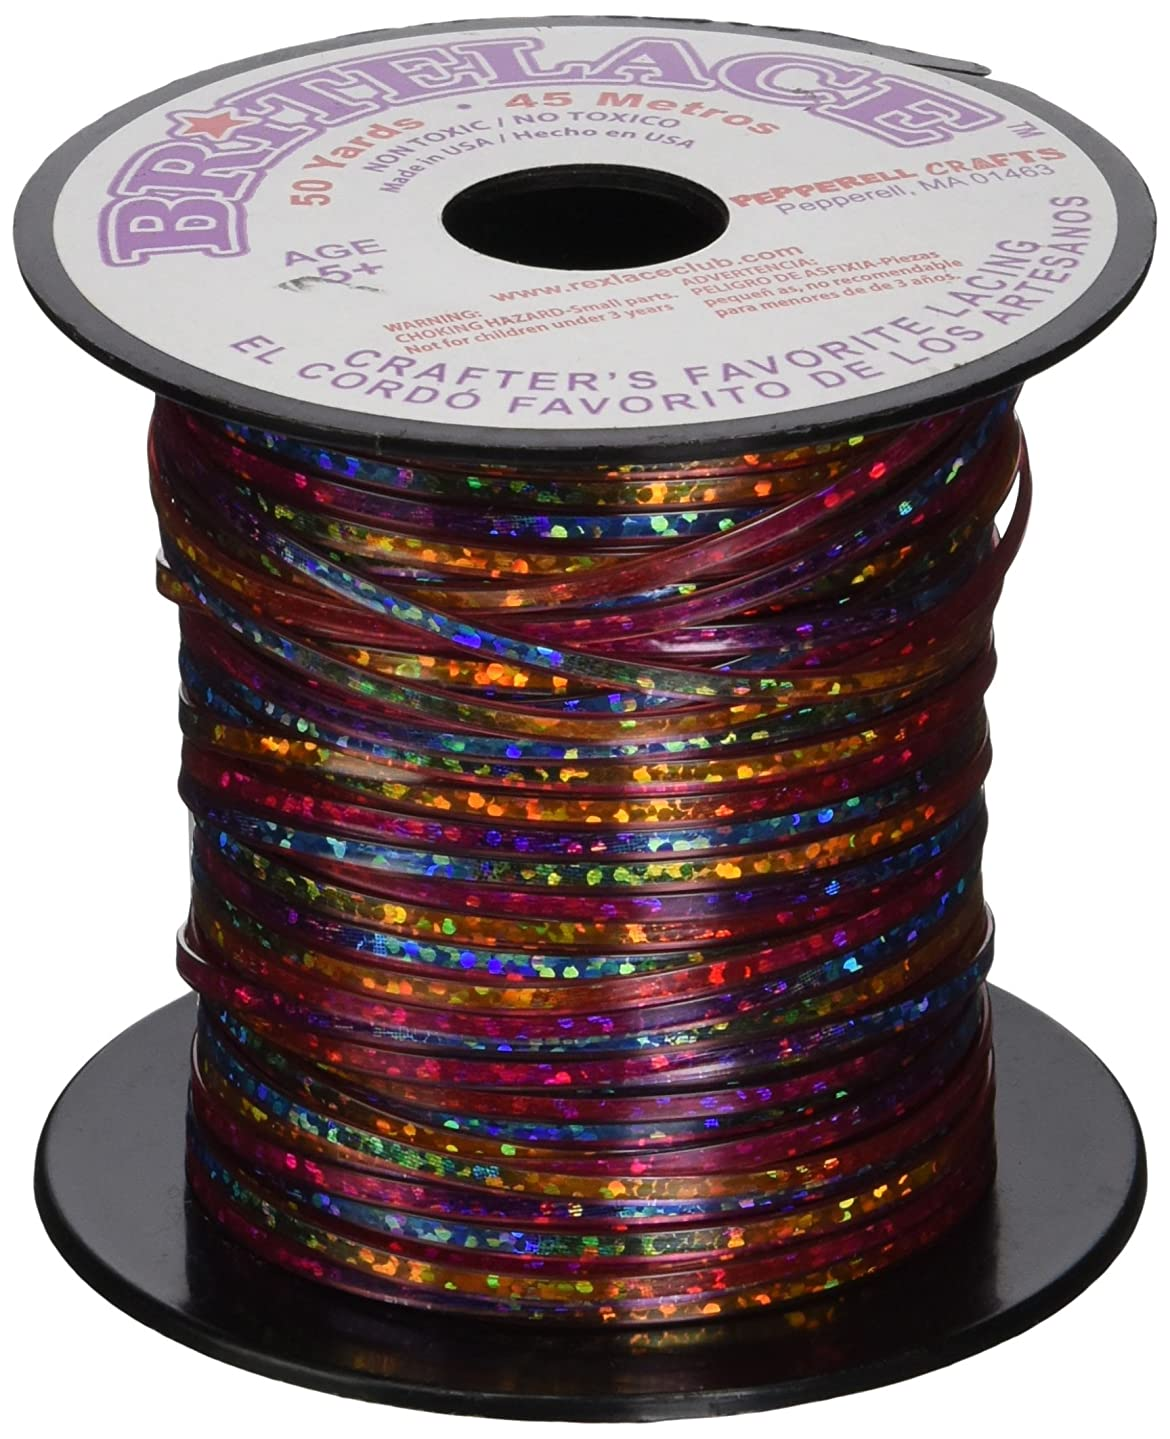 Pepperell RBS5011 Tie Dye Rexlace Plastic Lacing, 0.938